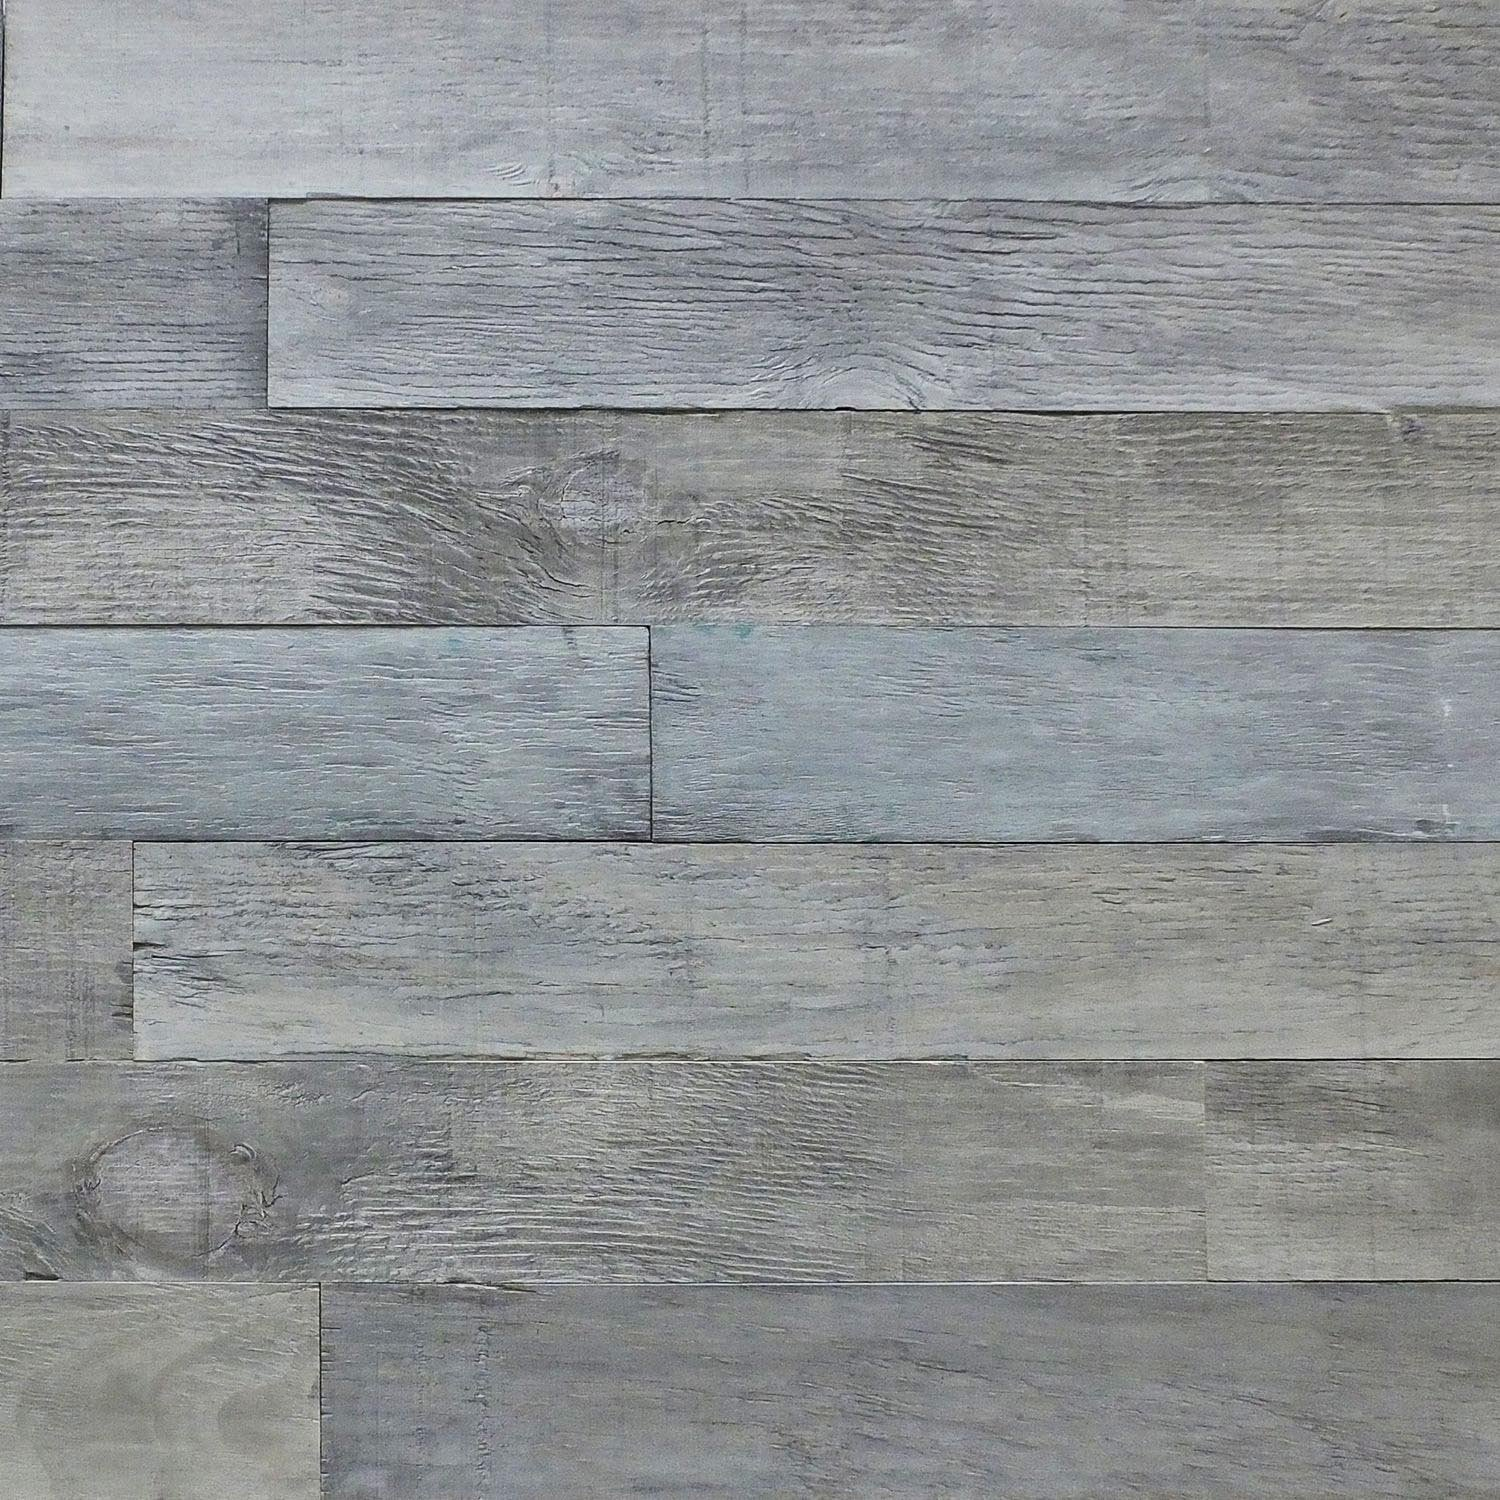 FOUR CLOVER Wood Wall Outdoor/Indoor Panels - Reclaimed Barn Wood Wall Panels - DIY Peel and Stick Easy Installation (20 Sq Ft - 5 Wide, Pewter Grey)